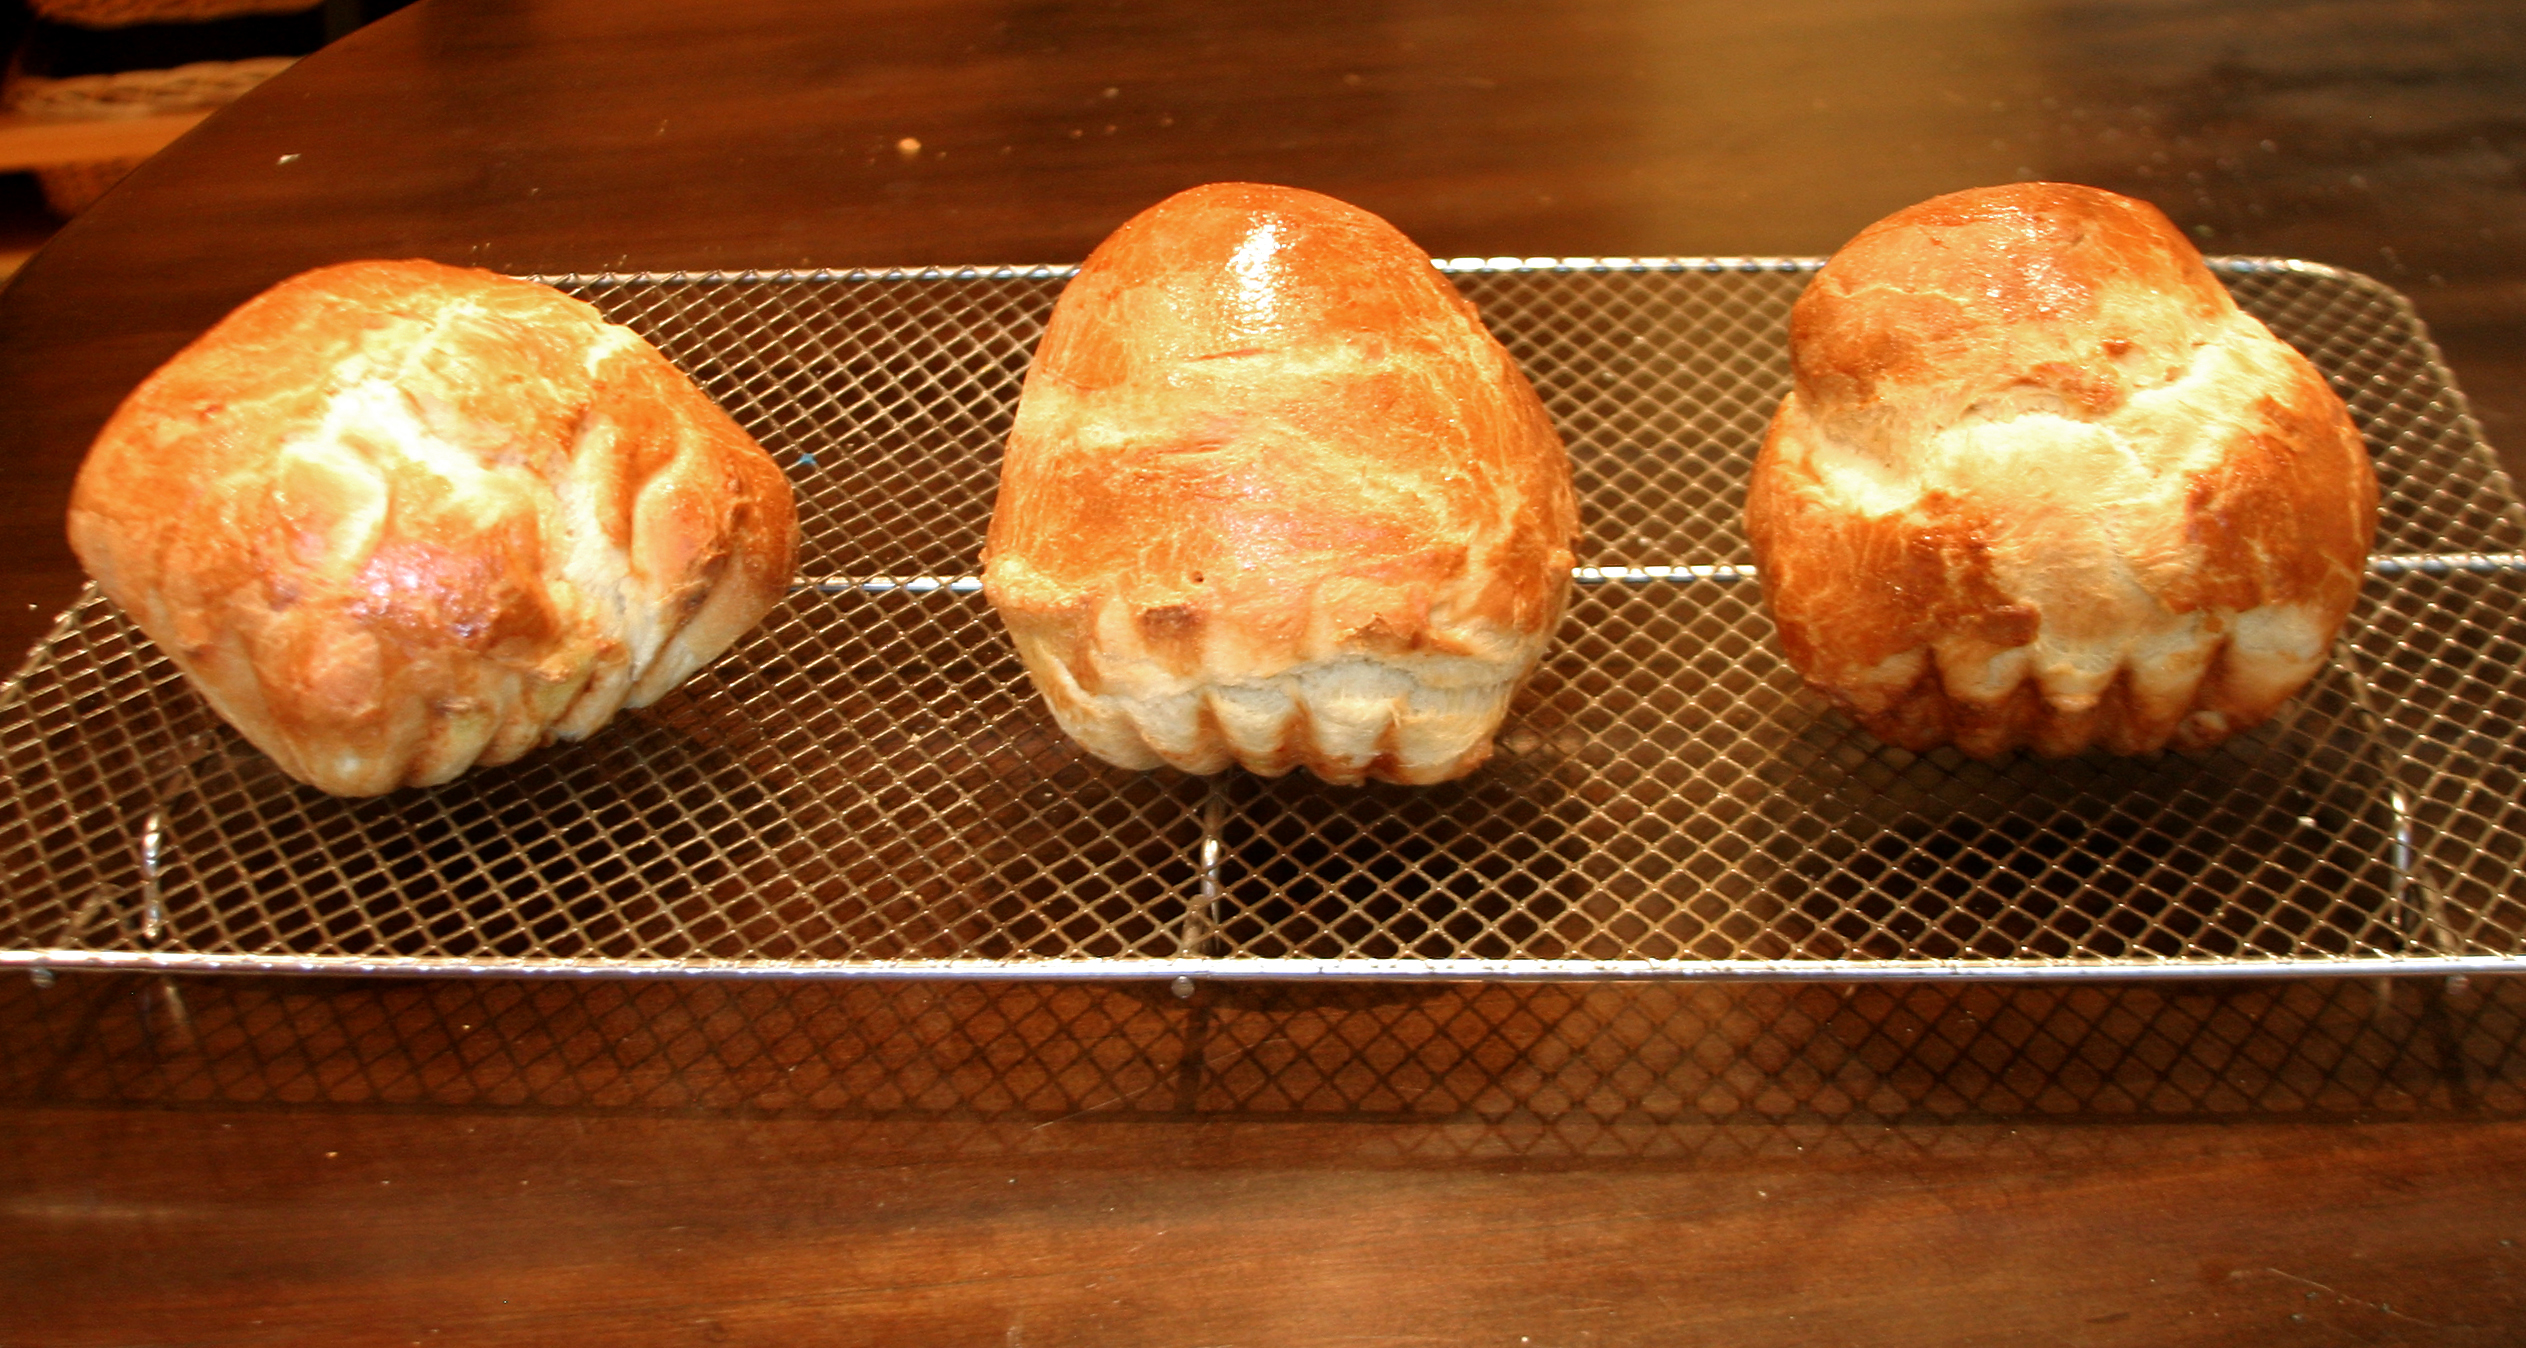 Out of the oven - not identical triplets